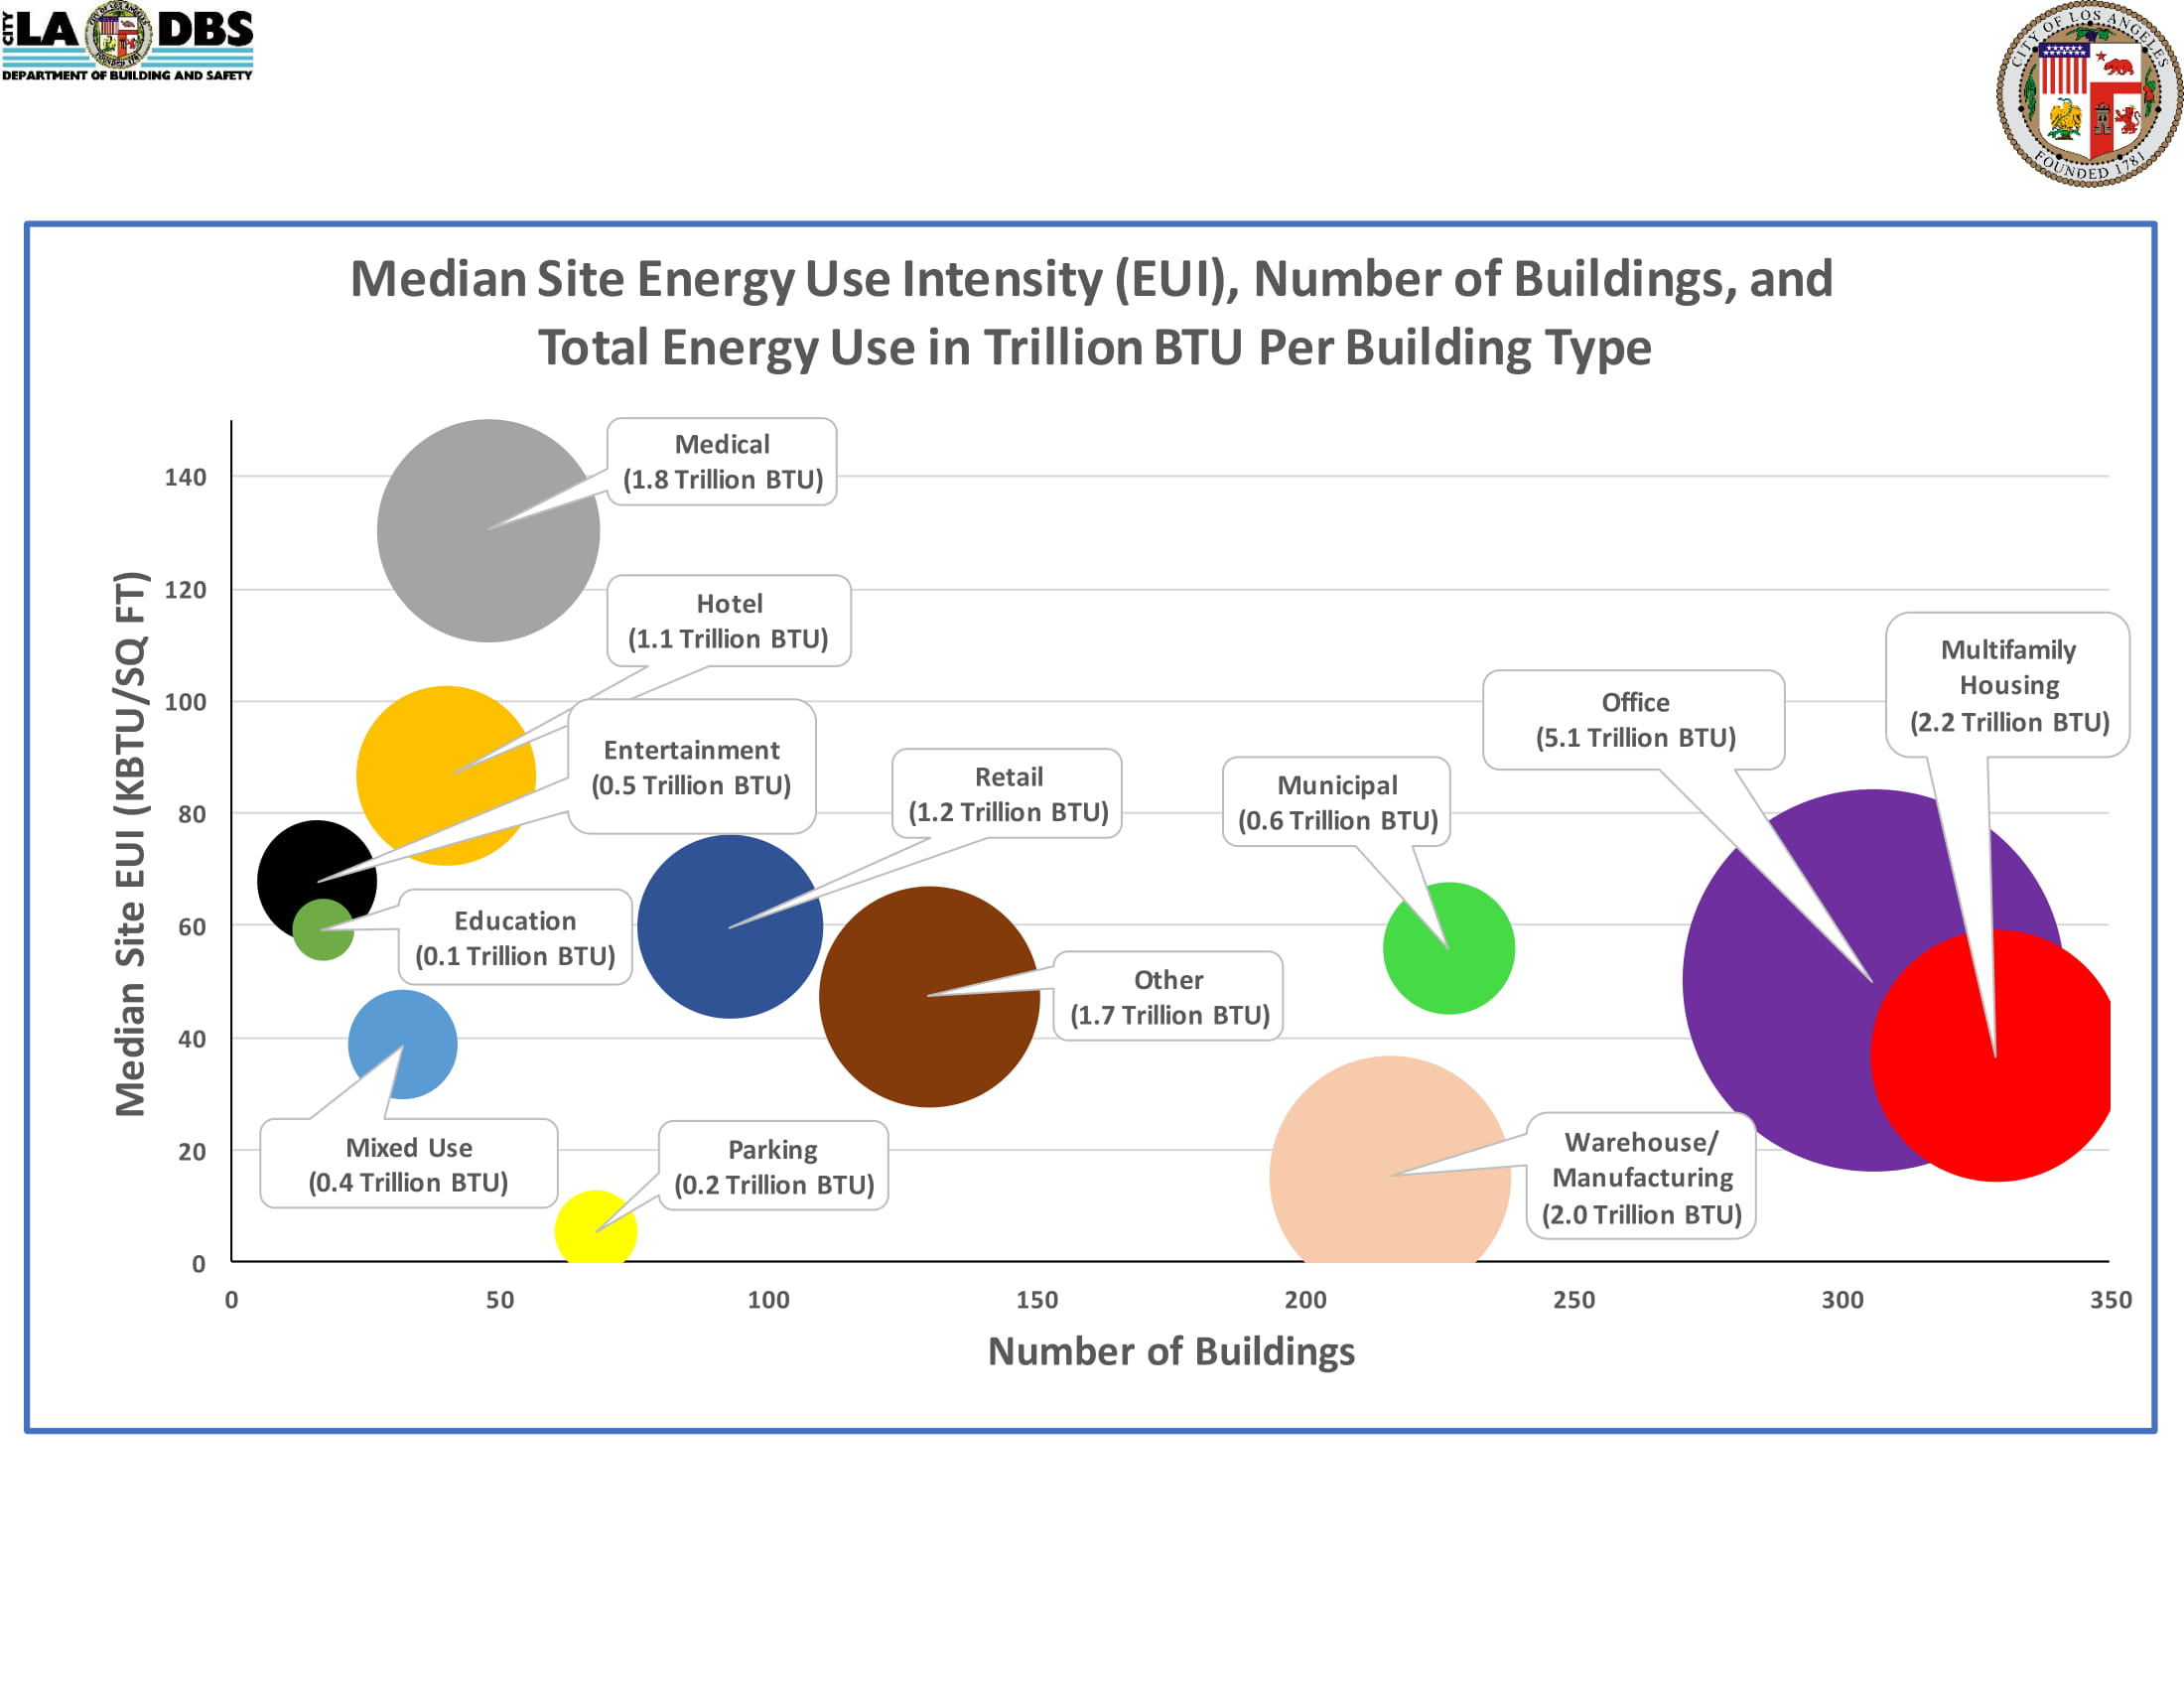 Median Site Energy Use Intensity (EUI) Number of Buildings and Total Energy Use in Trillion BTU Per Building Type